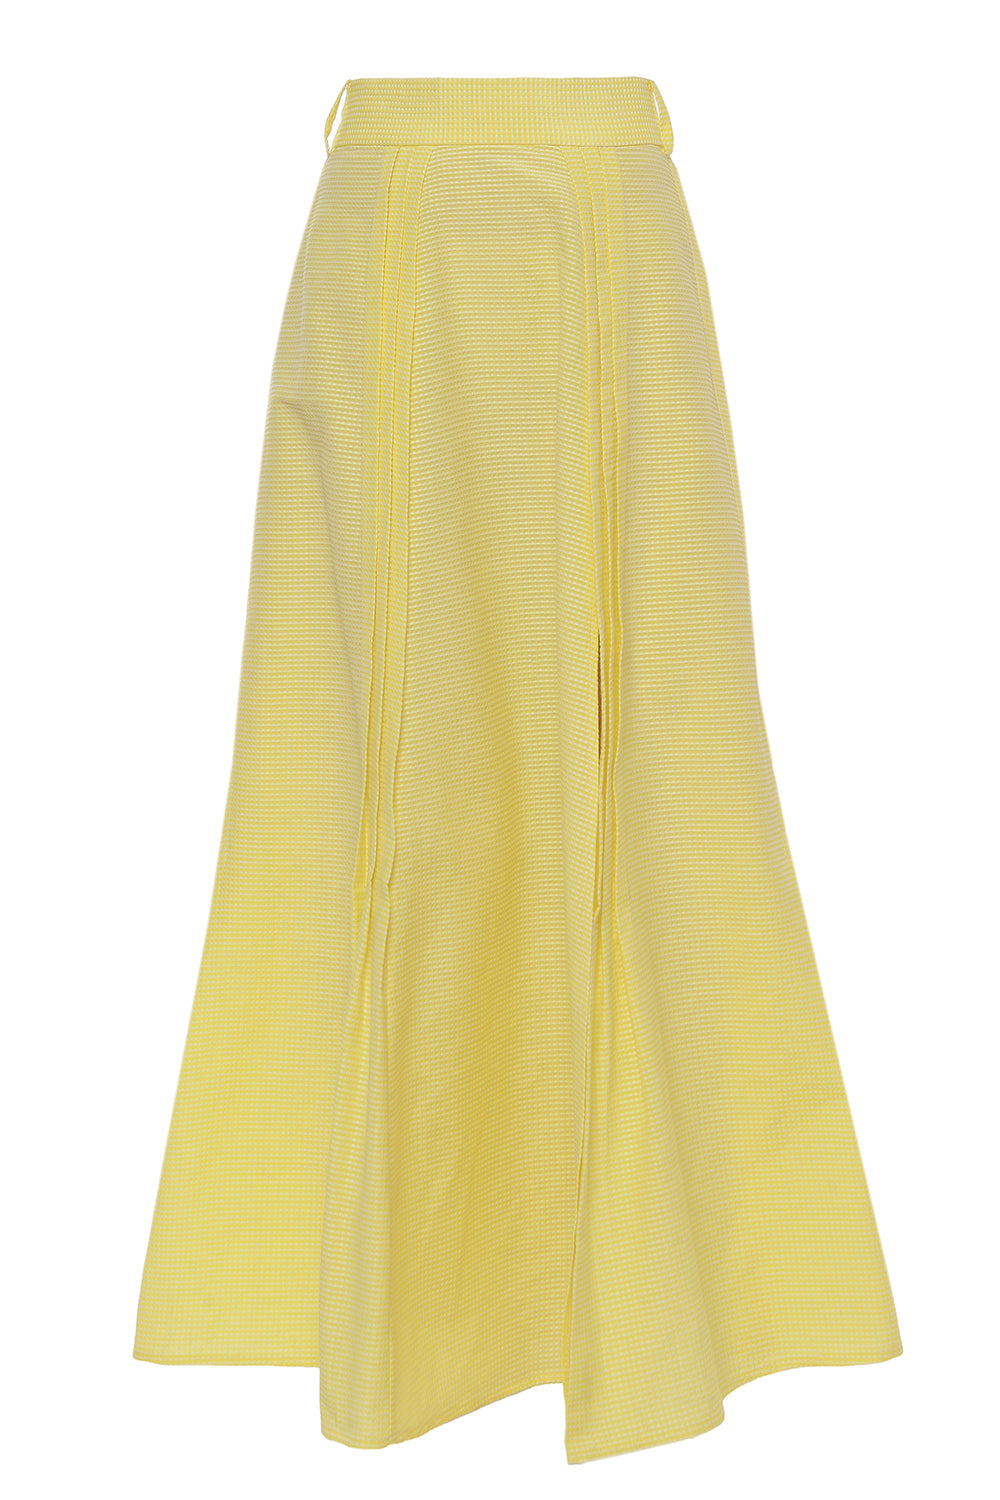 It's Always Sunny Skirt in Yellow